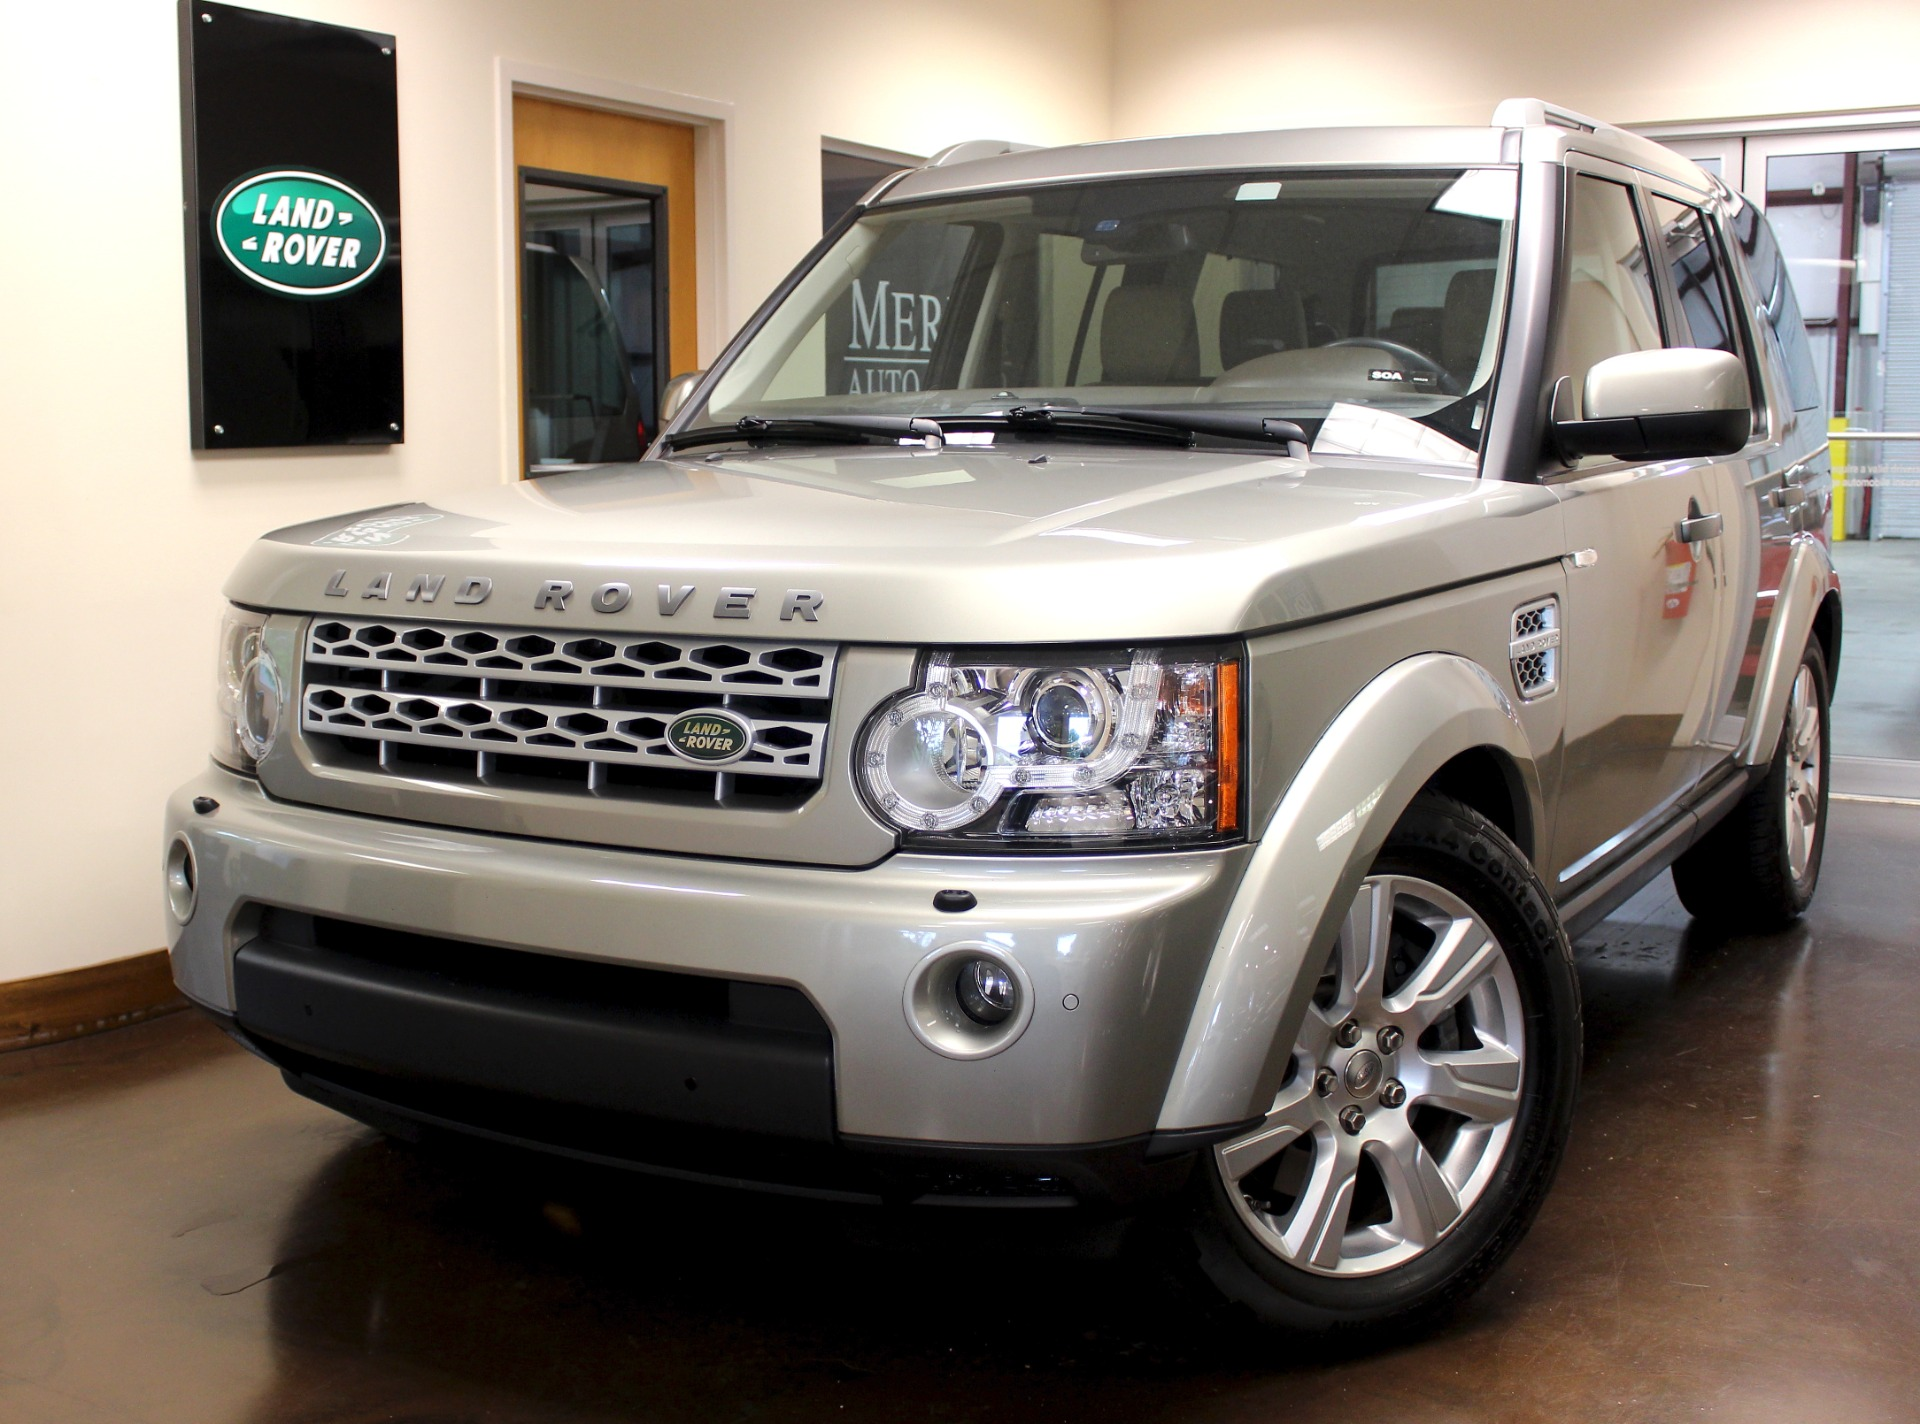 sport ks landrover city in lease specials rover kansas discoverysport land discovery